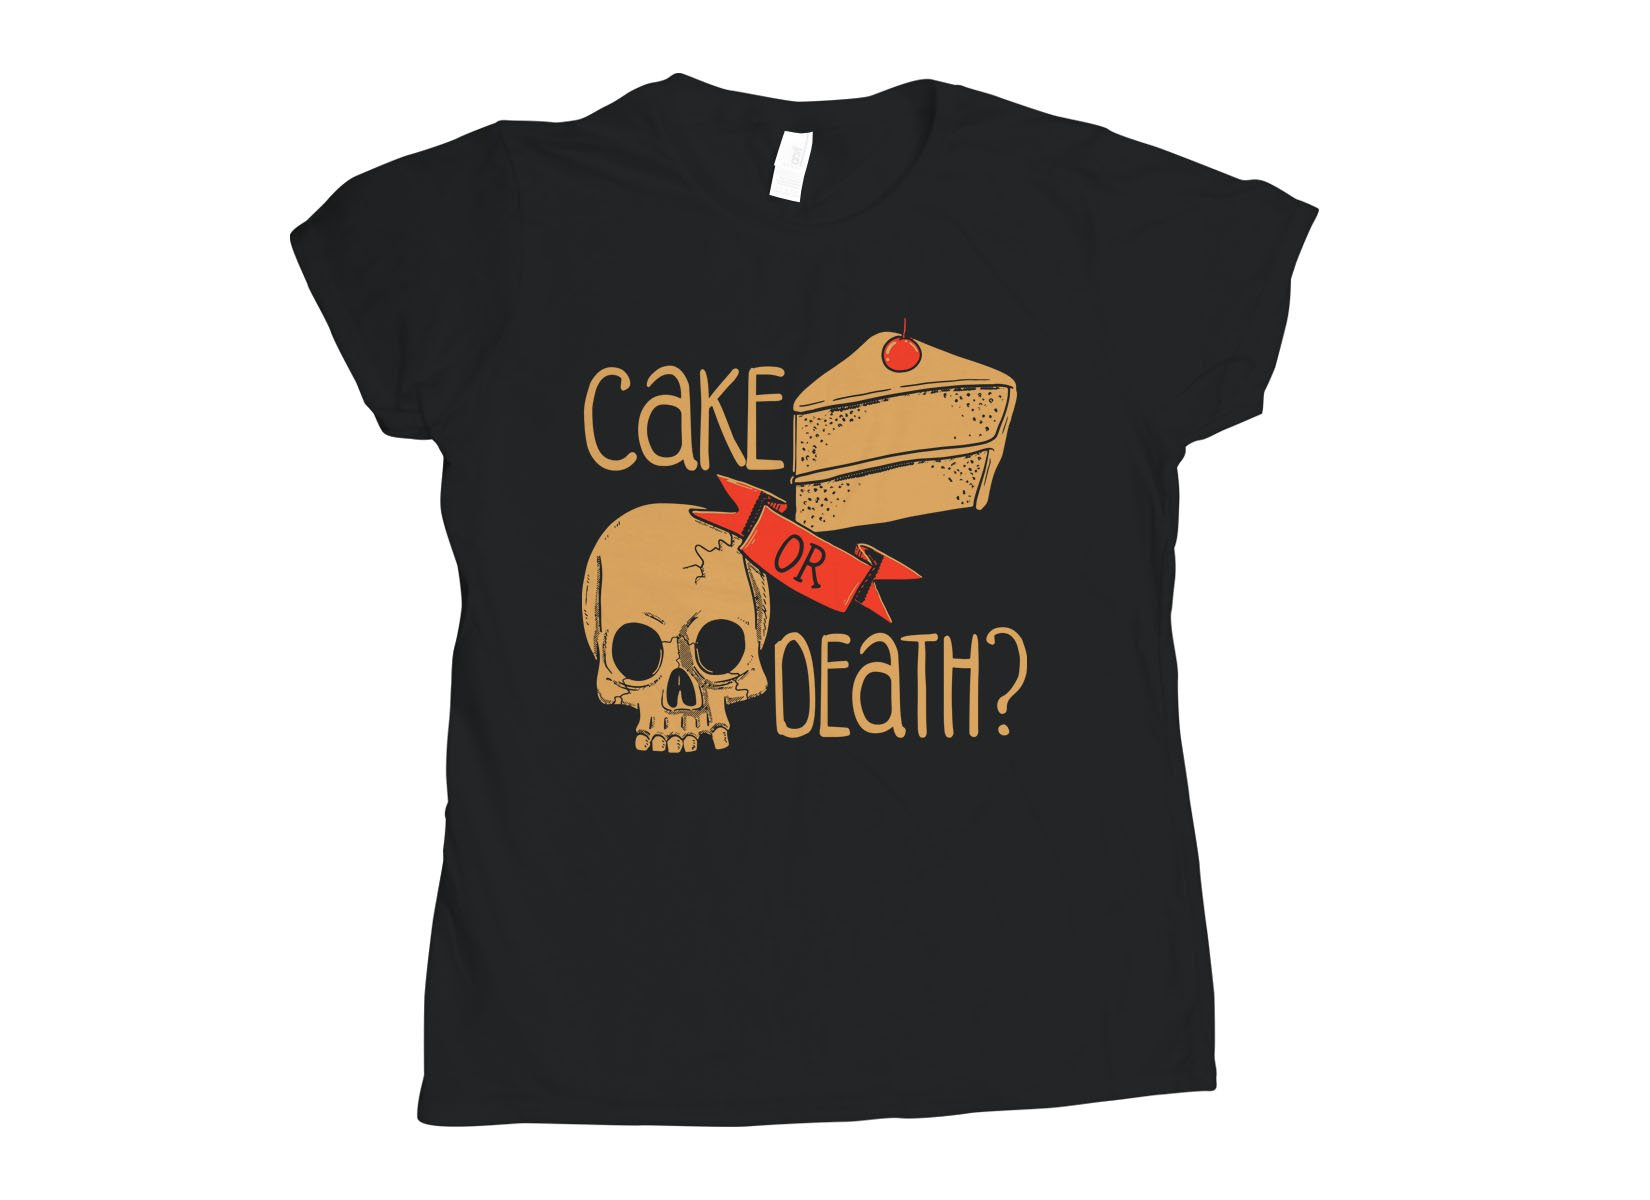 Cake Or Death? on Womens T-Shirt